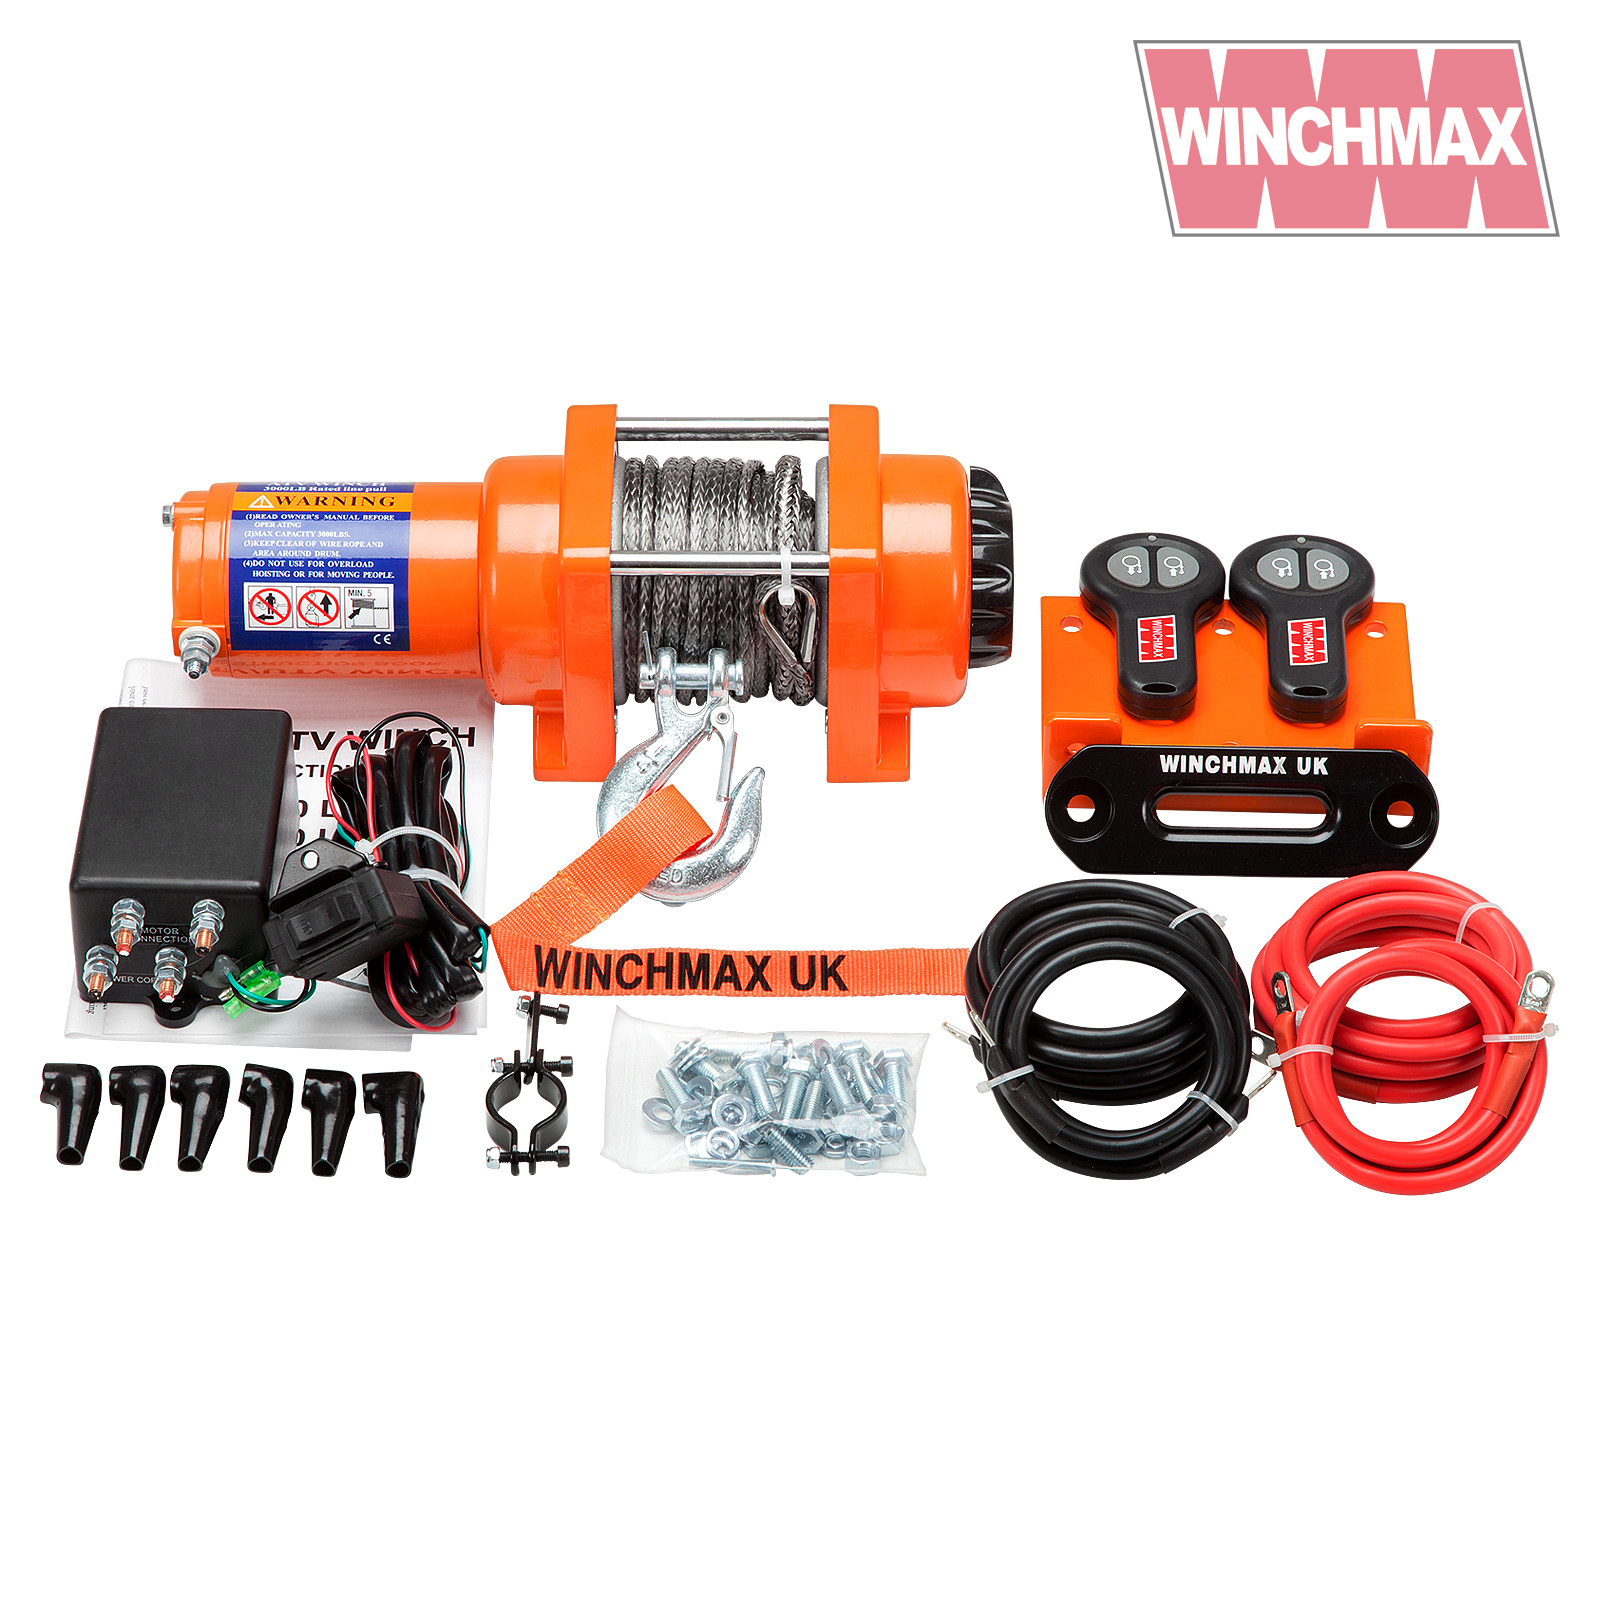 Electric Winch 12v Atv Boat Trailer 3000 Lb Winchmax Synthetic Warn 1000 Ac Motor Wiring Diagram Wm300012vrs 372 335